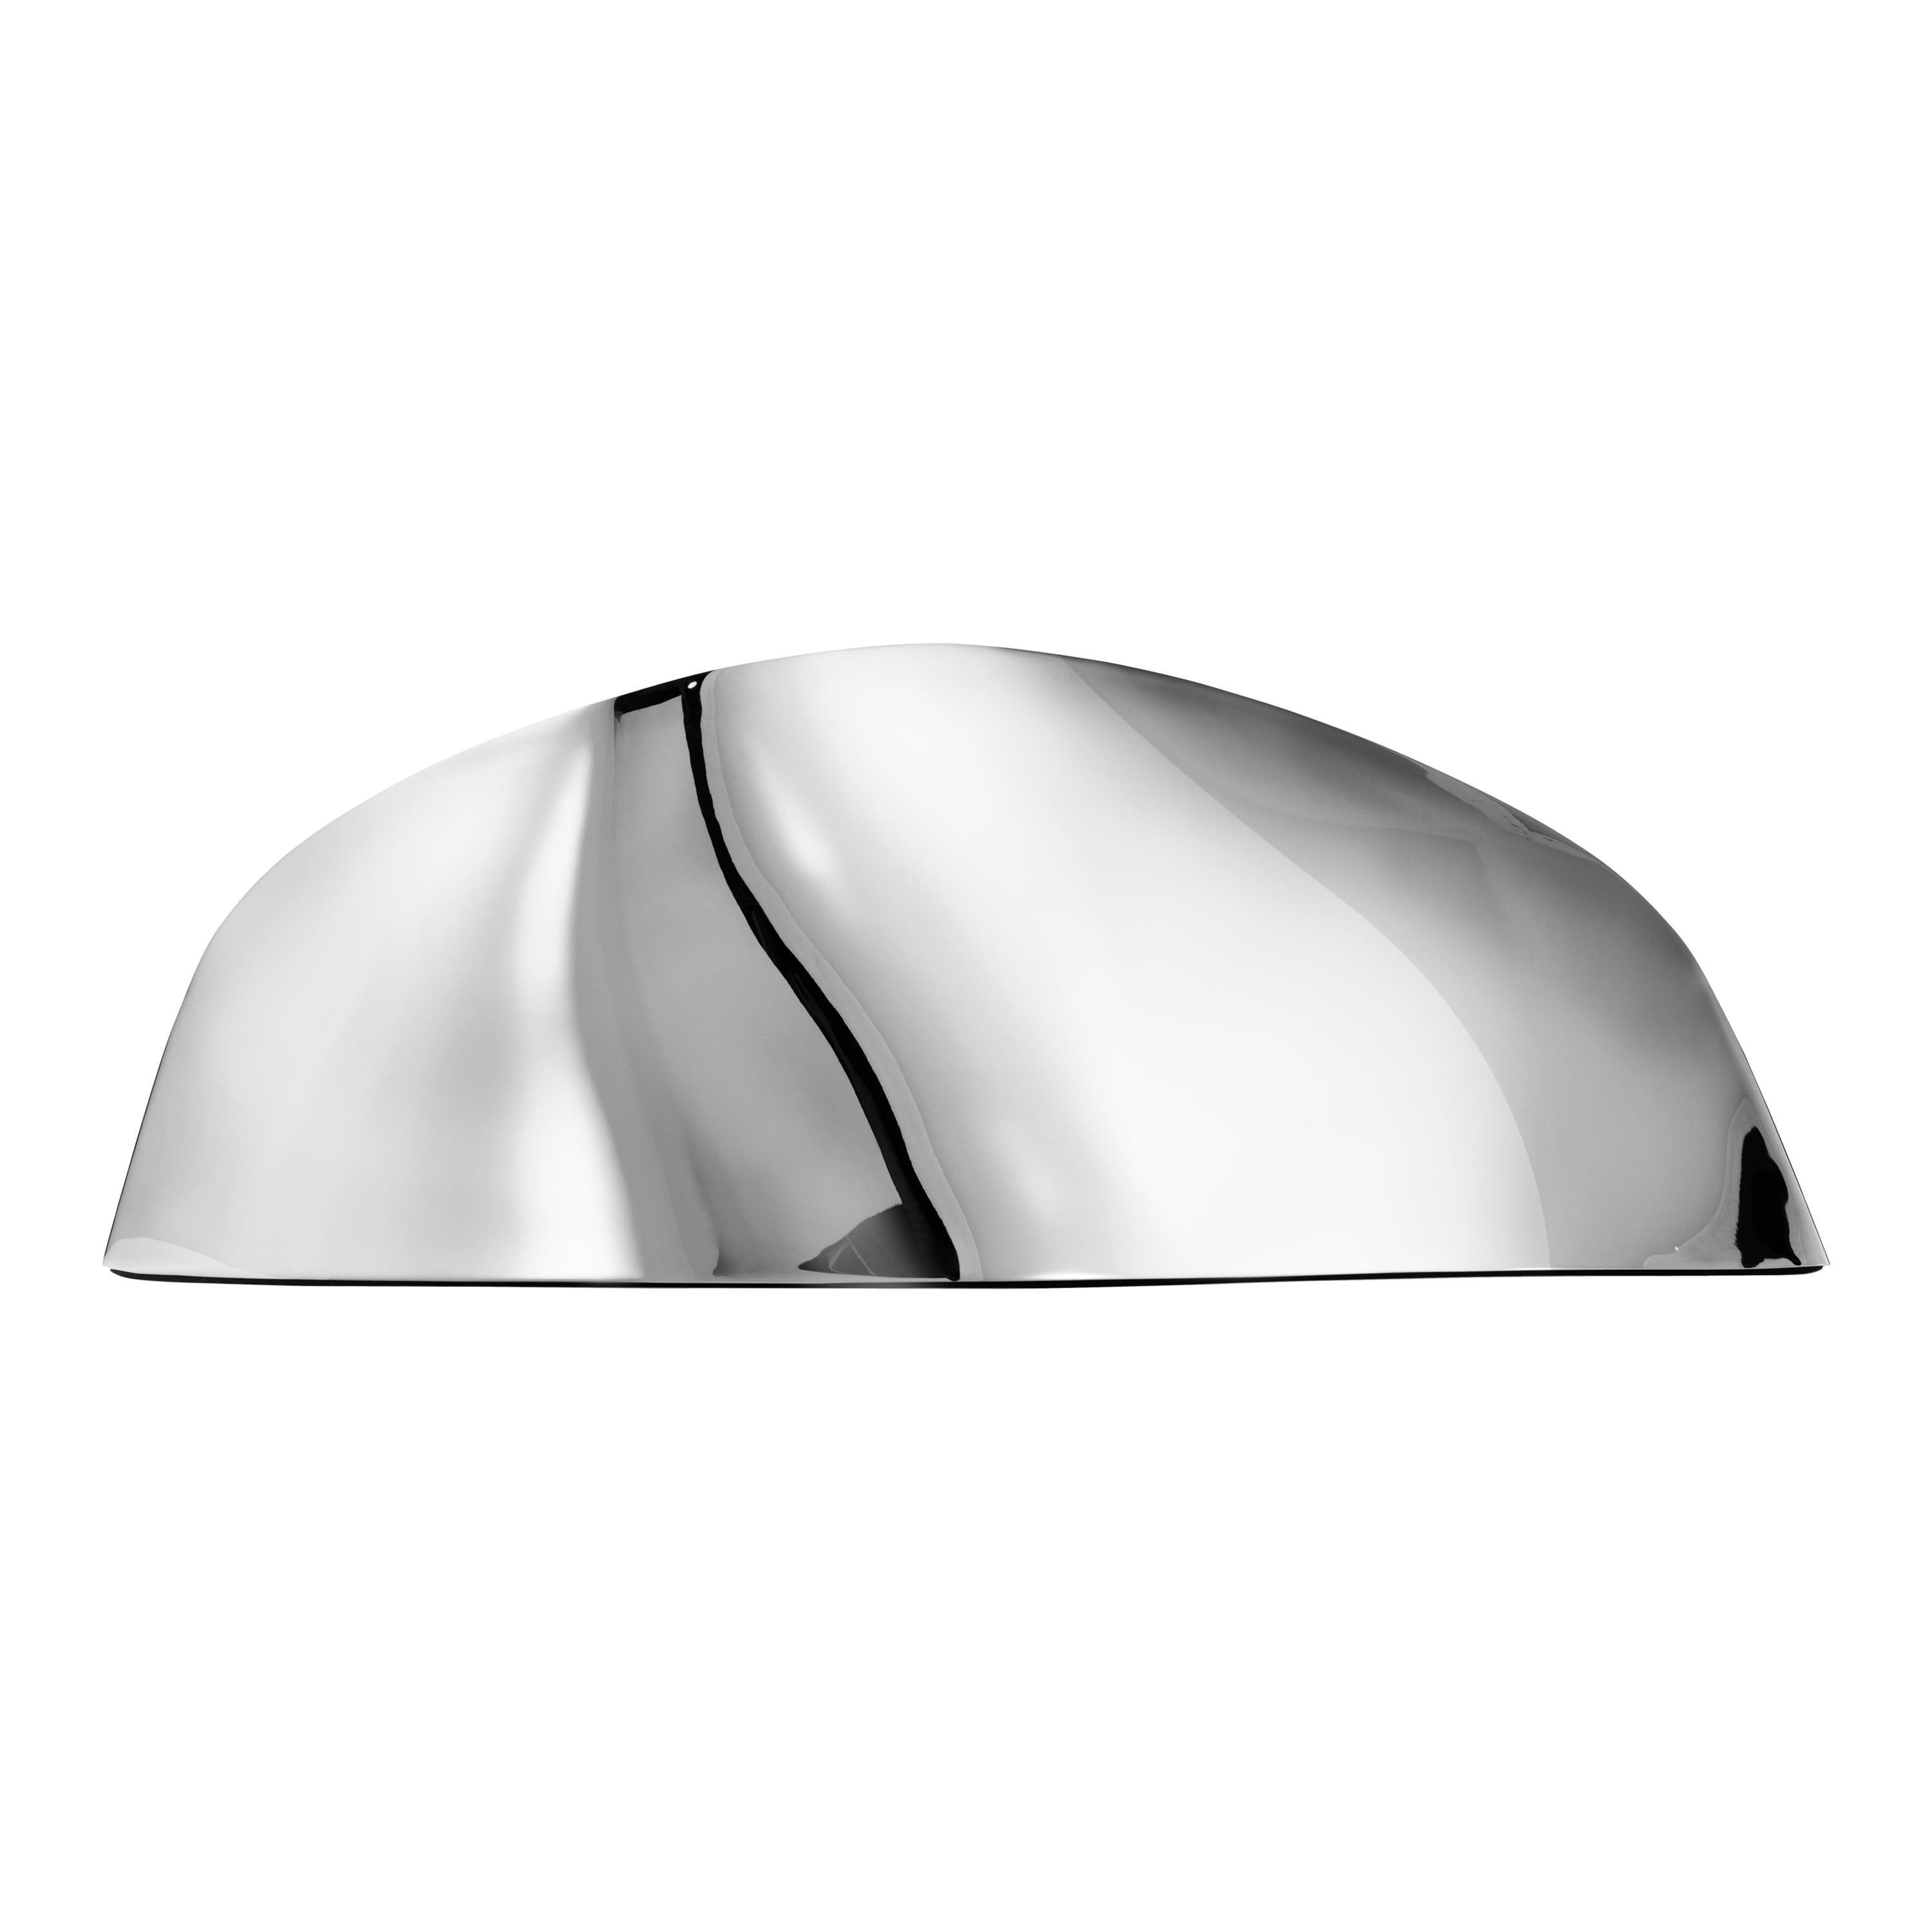 Georg Jensen Indulgence Champagne Bowl in Stainless Steel by Helle Damkjær